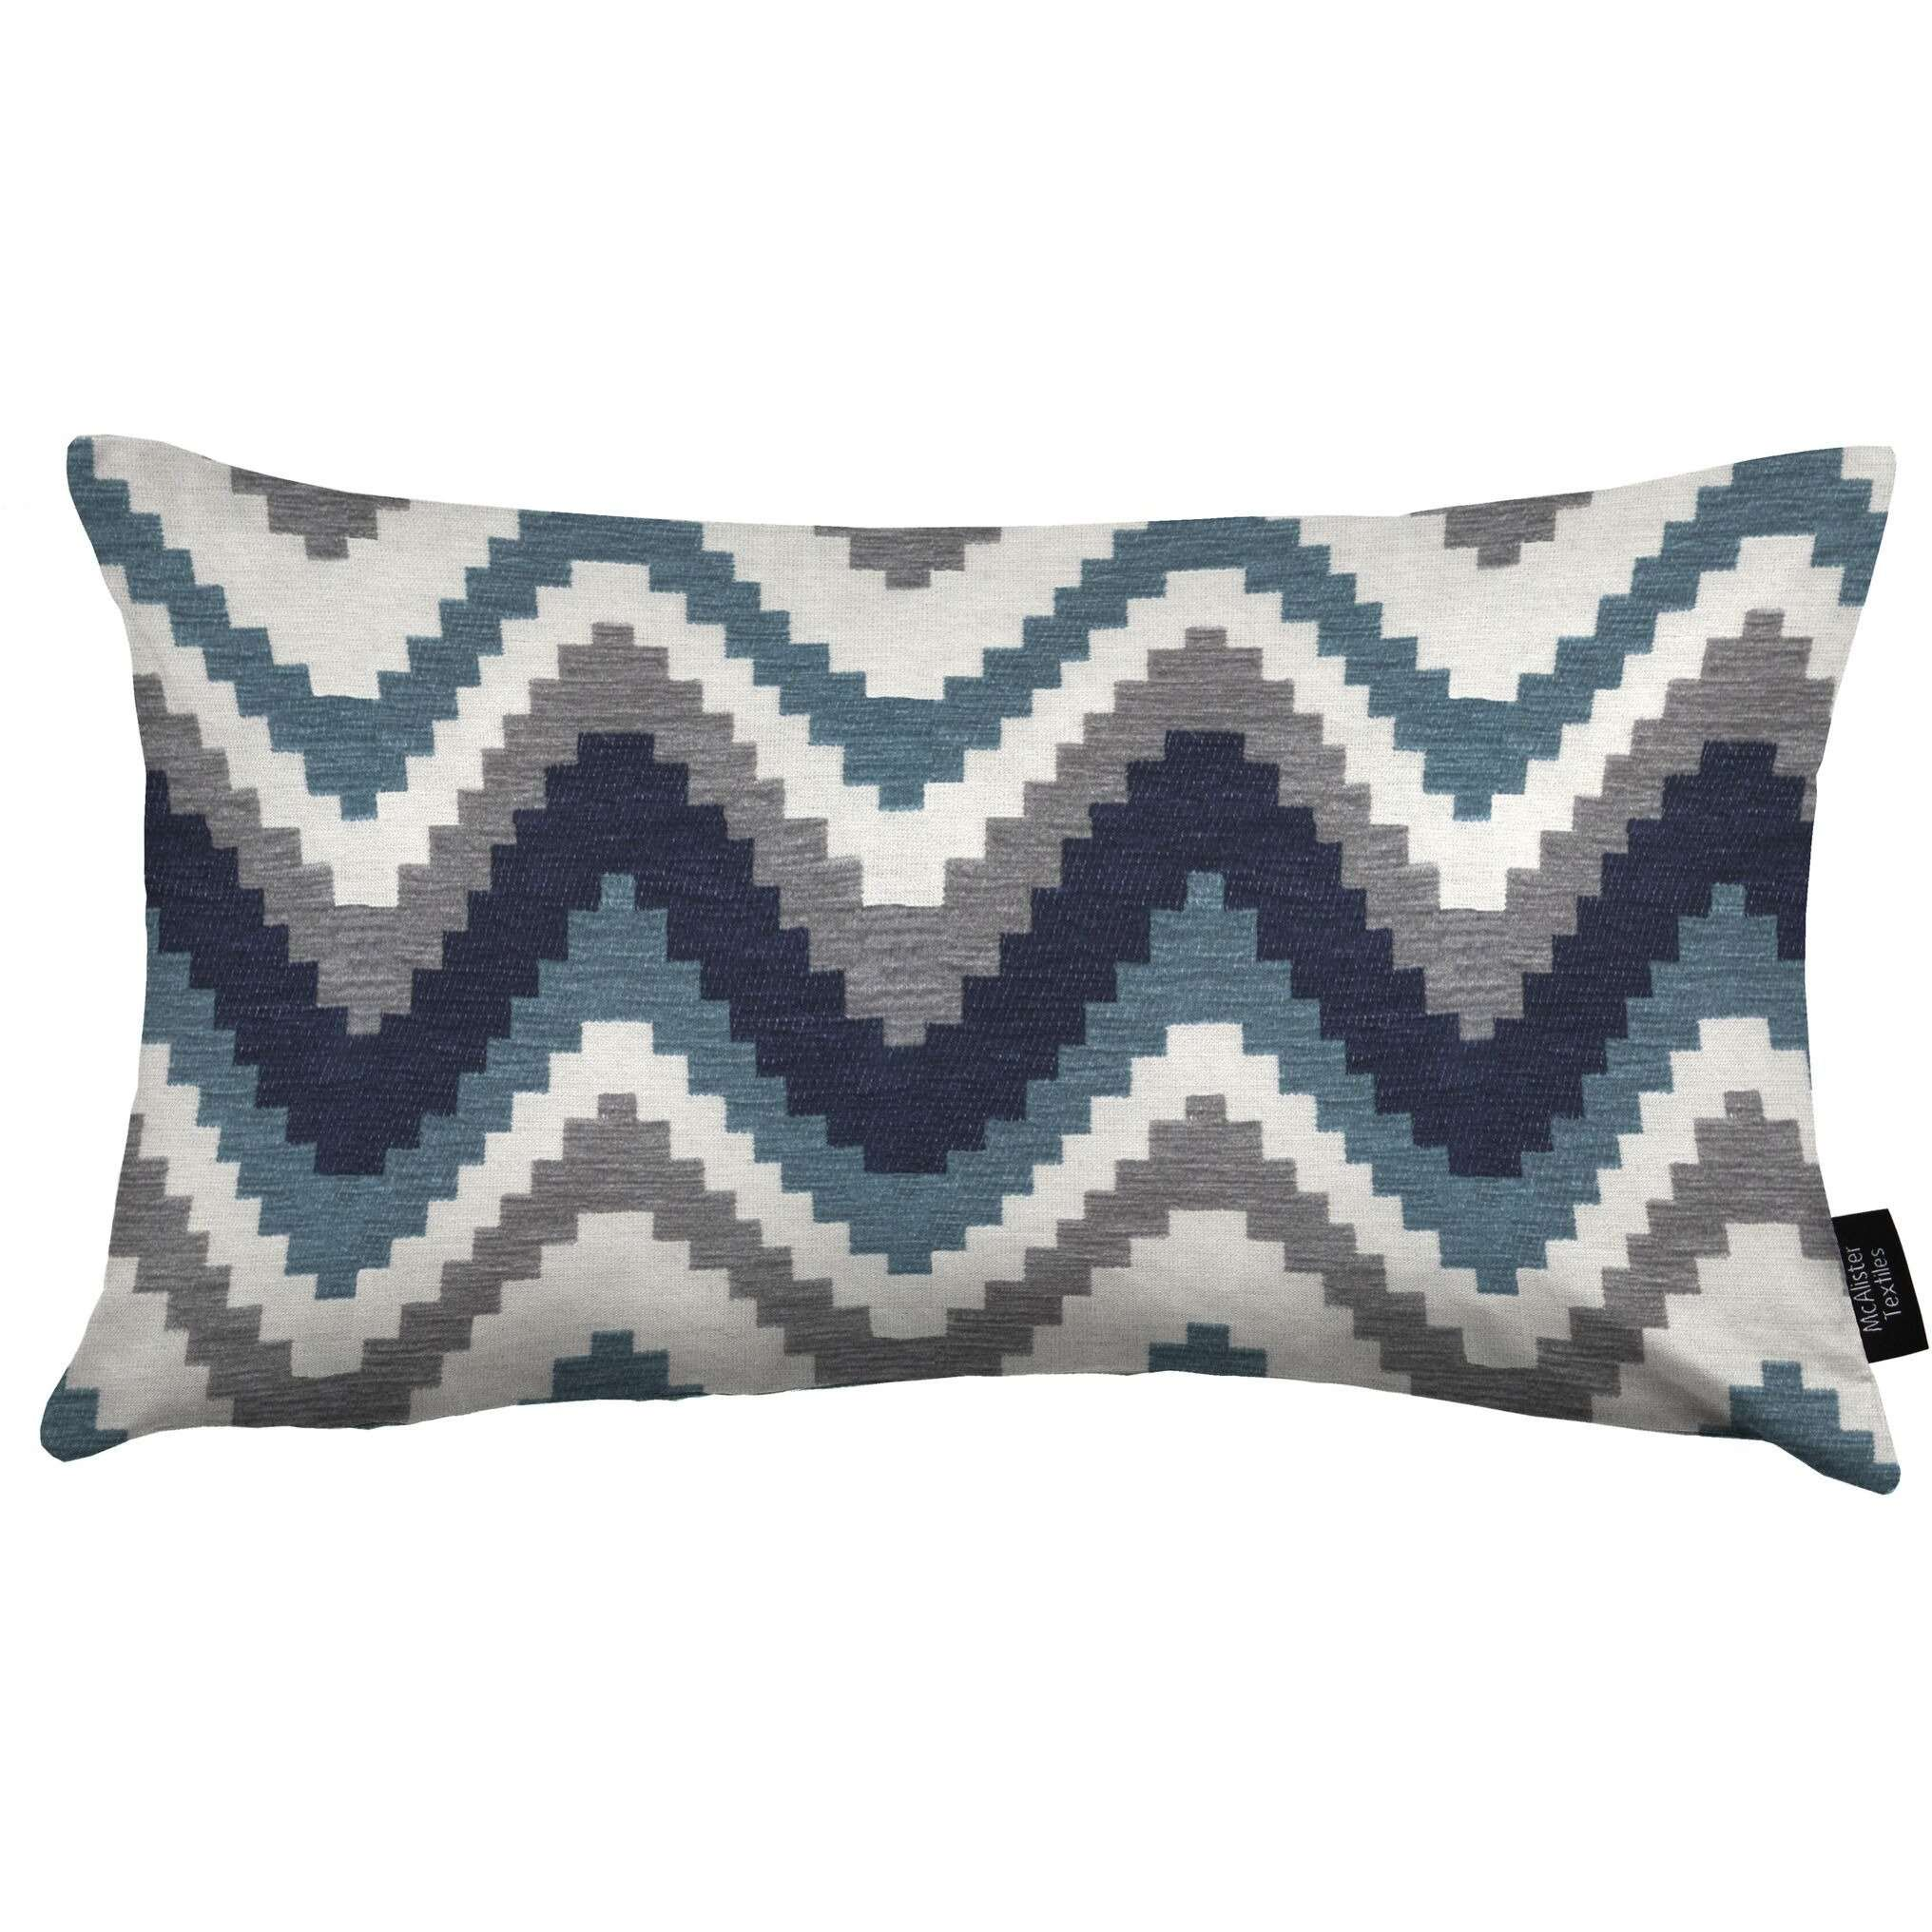 McAlister Textiles Navajo Navy Blue Striped Cushion Cushions and Covers Cover Only 50cm x 30cm